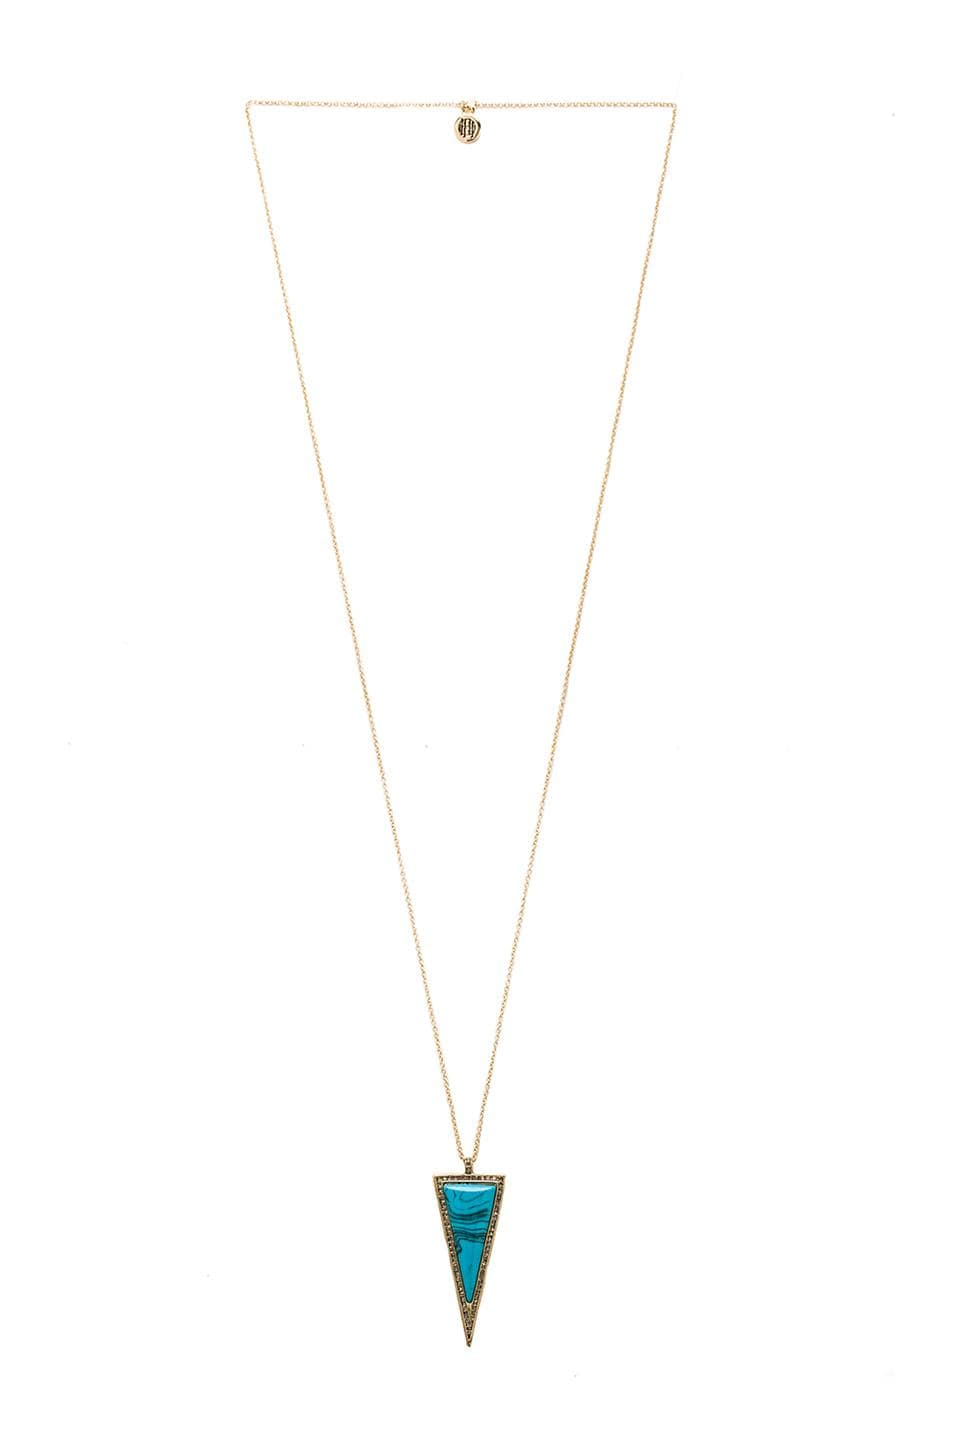 House of Harlow Delta Pendant Necklace in Turquoise